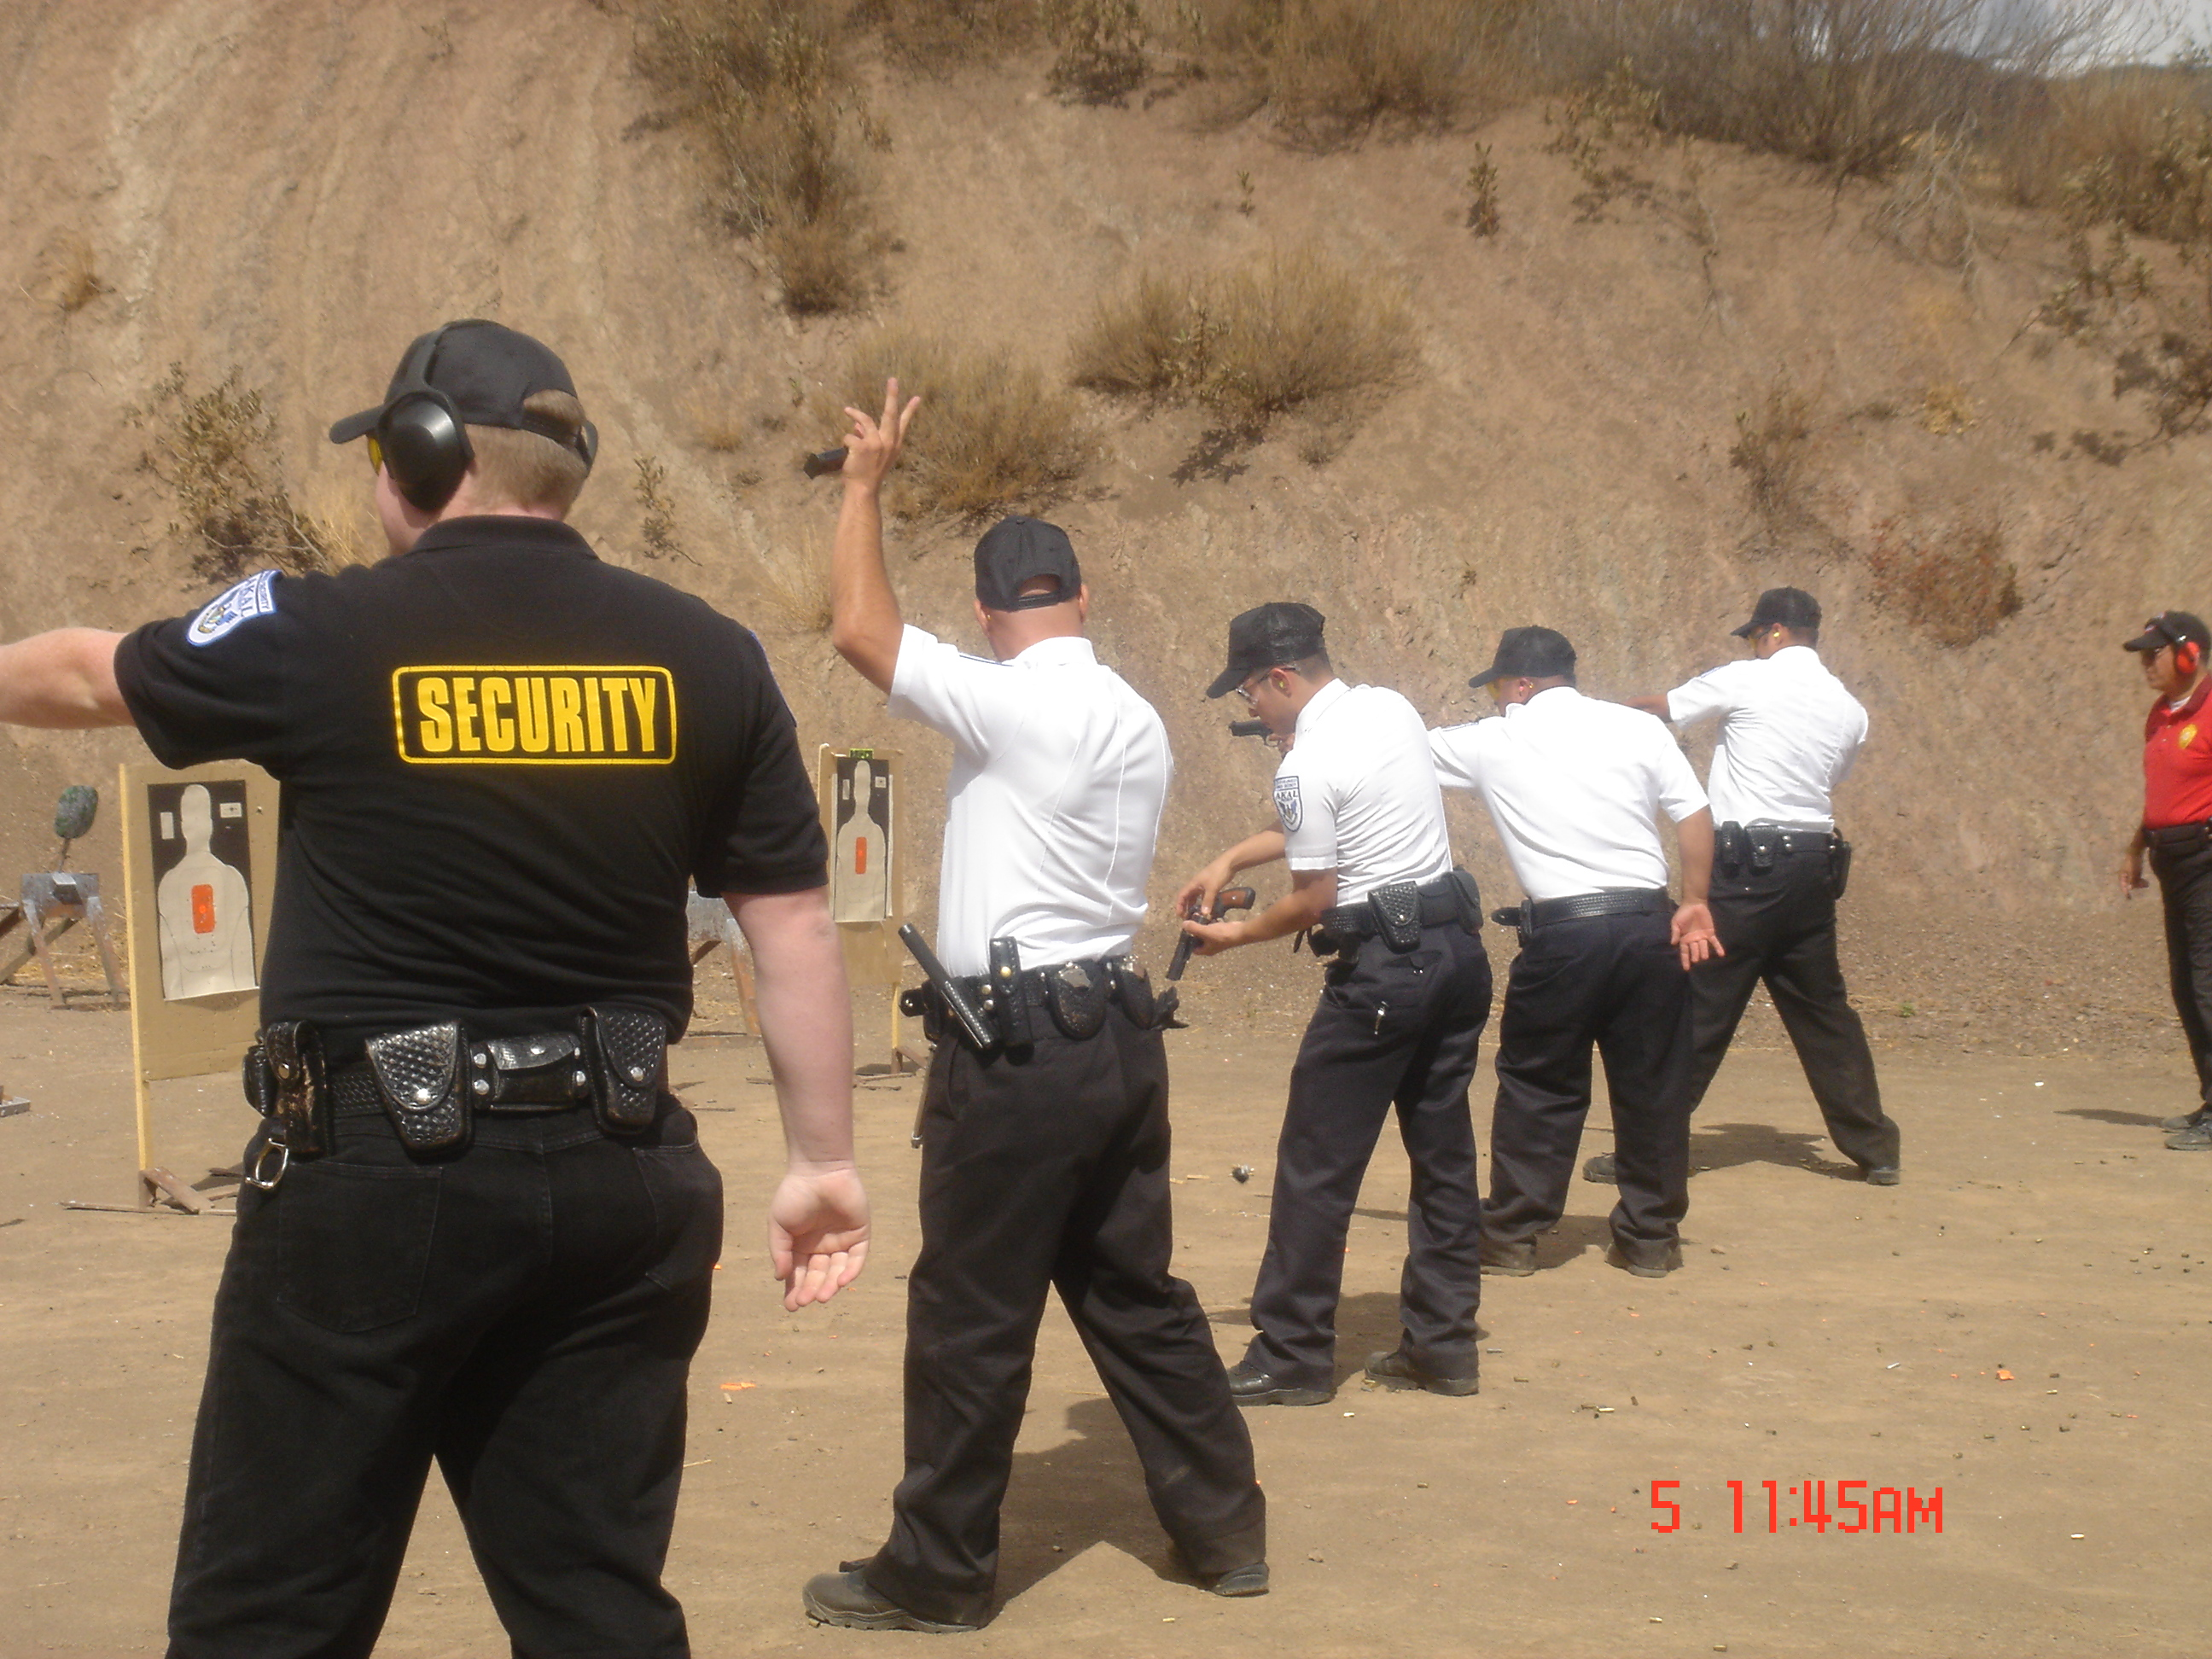 Armed Guard Certification